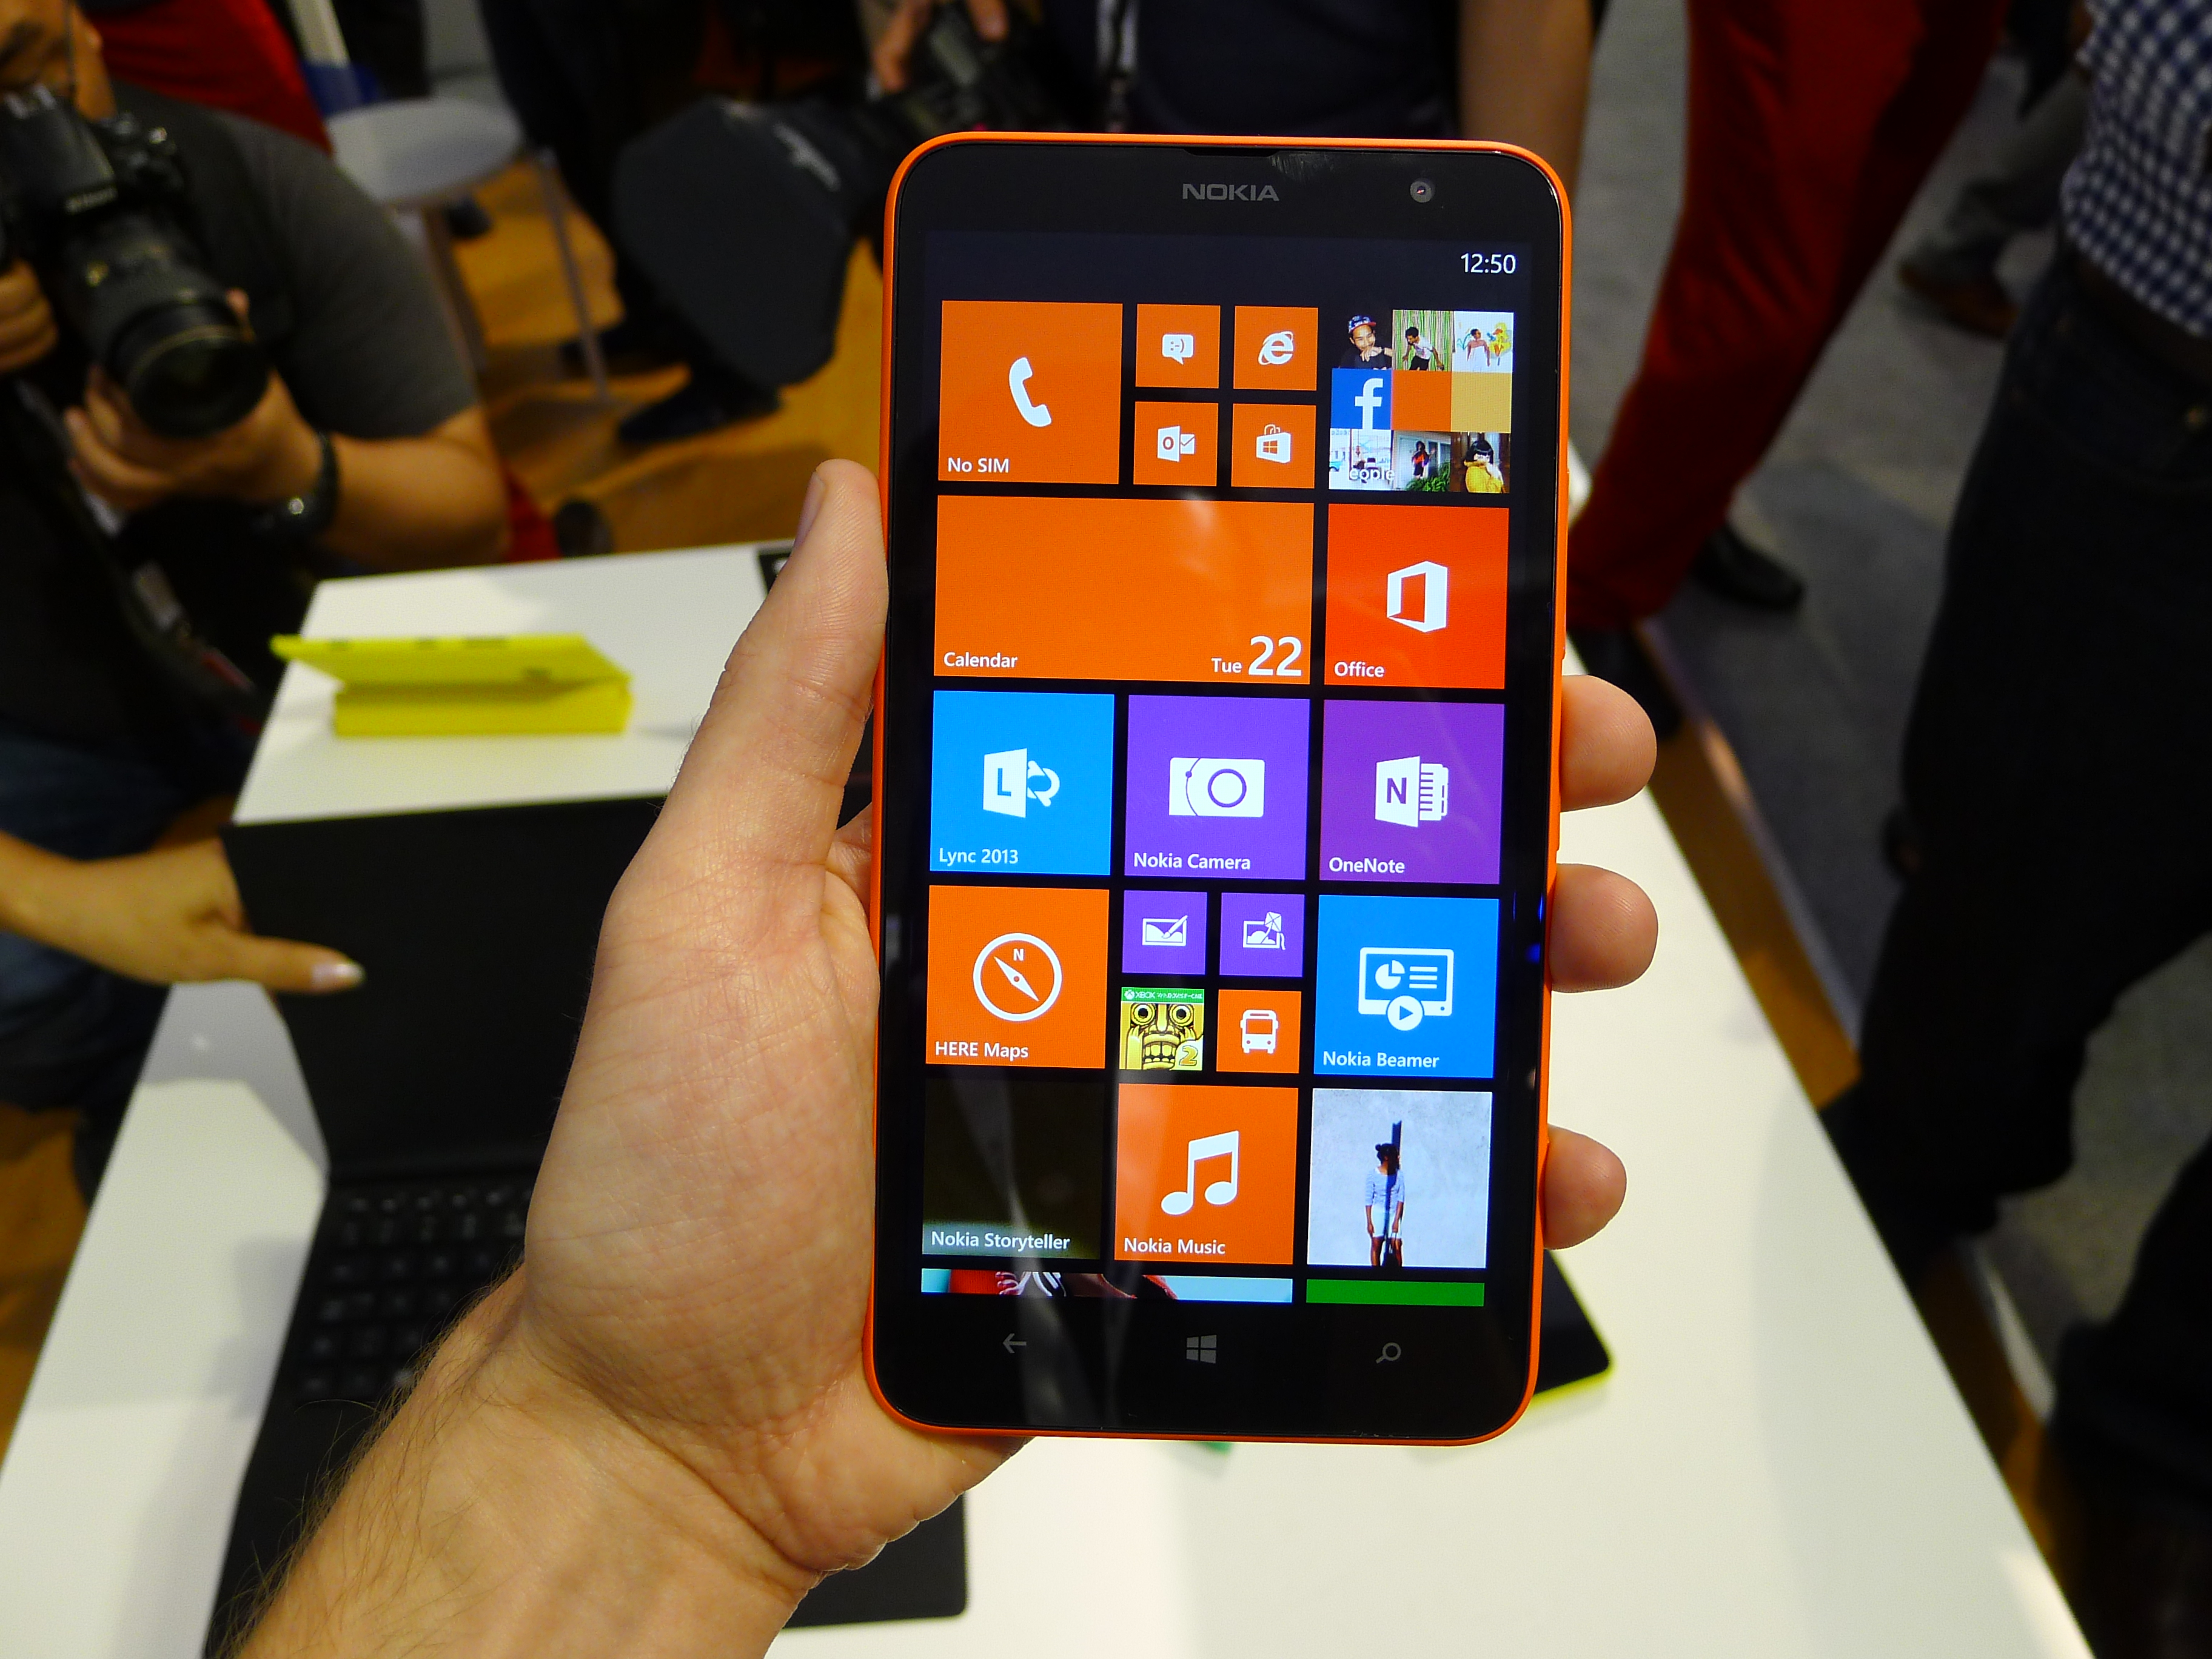 P1040499 Nokia Lumia 1320 hands on: How does this 6, 720p smartphone stack up against the Lumia 1520?